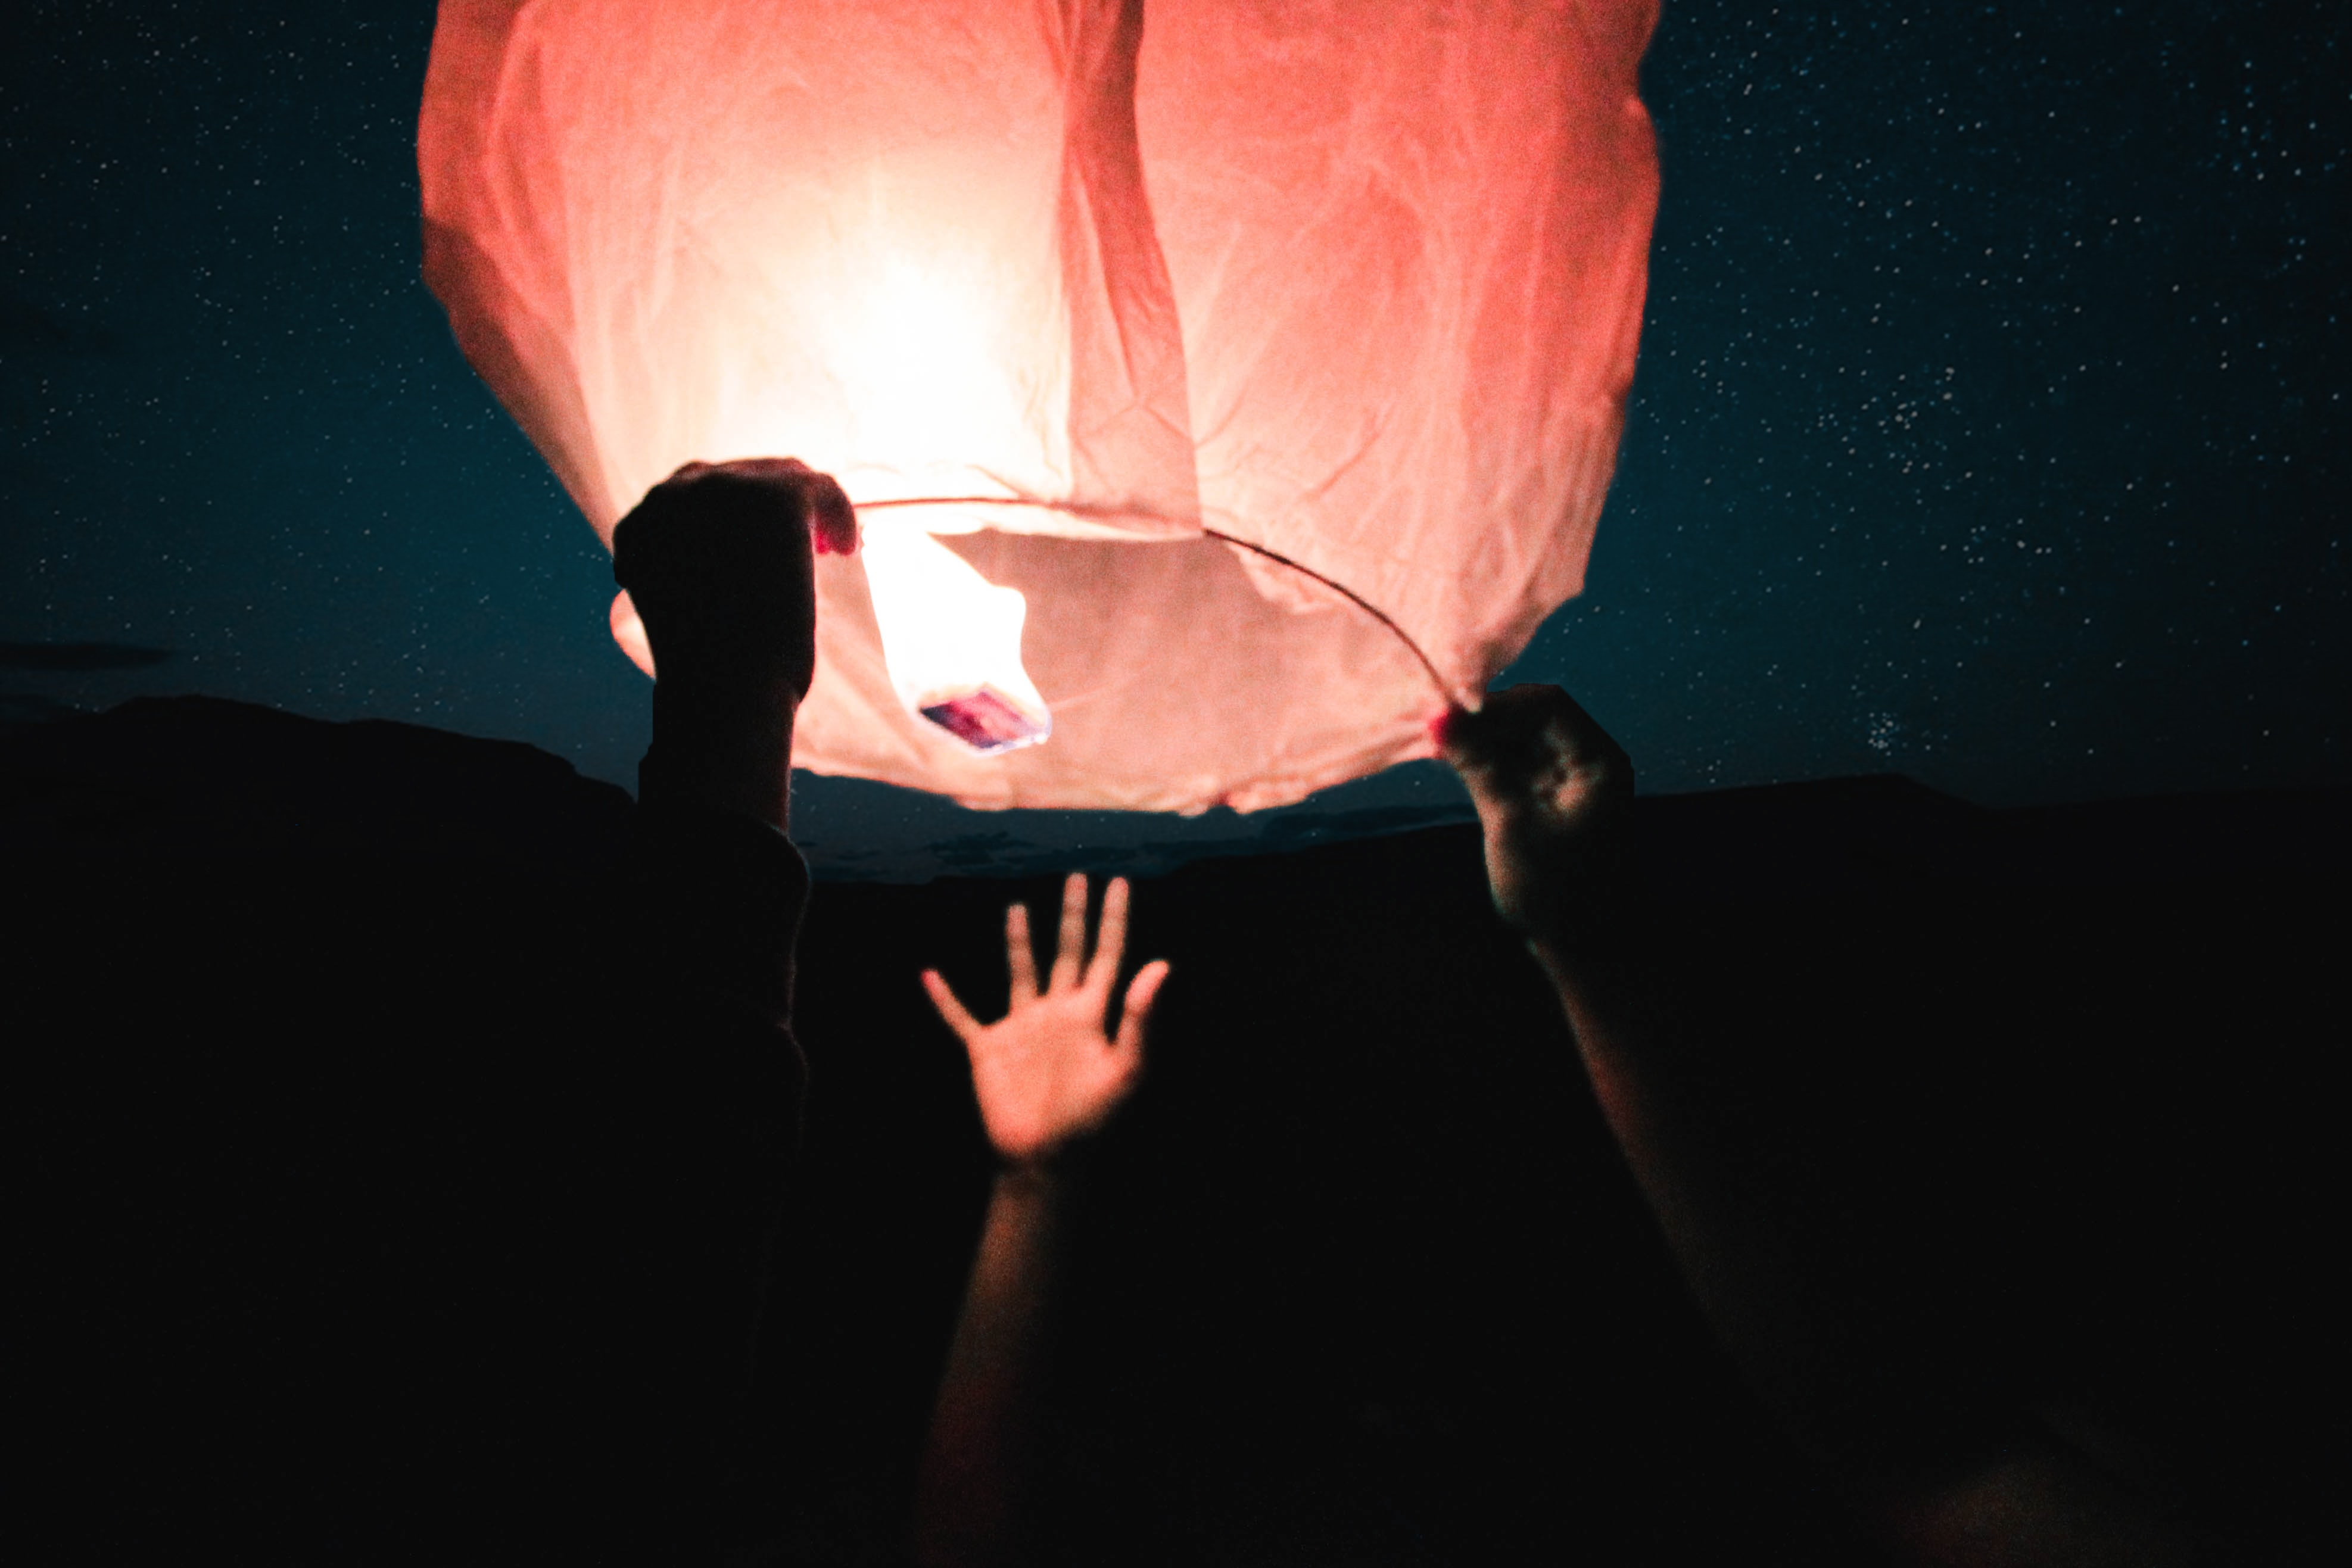 three human hand about to catch and hold sky lantern at night time